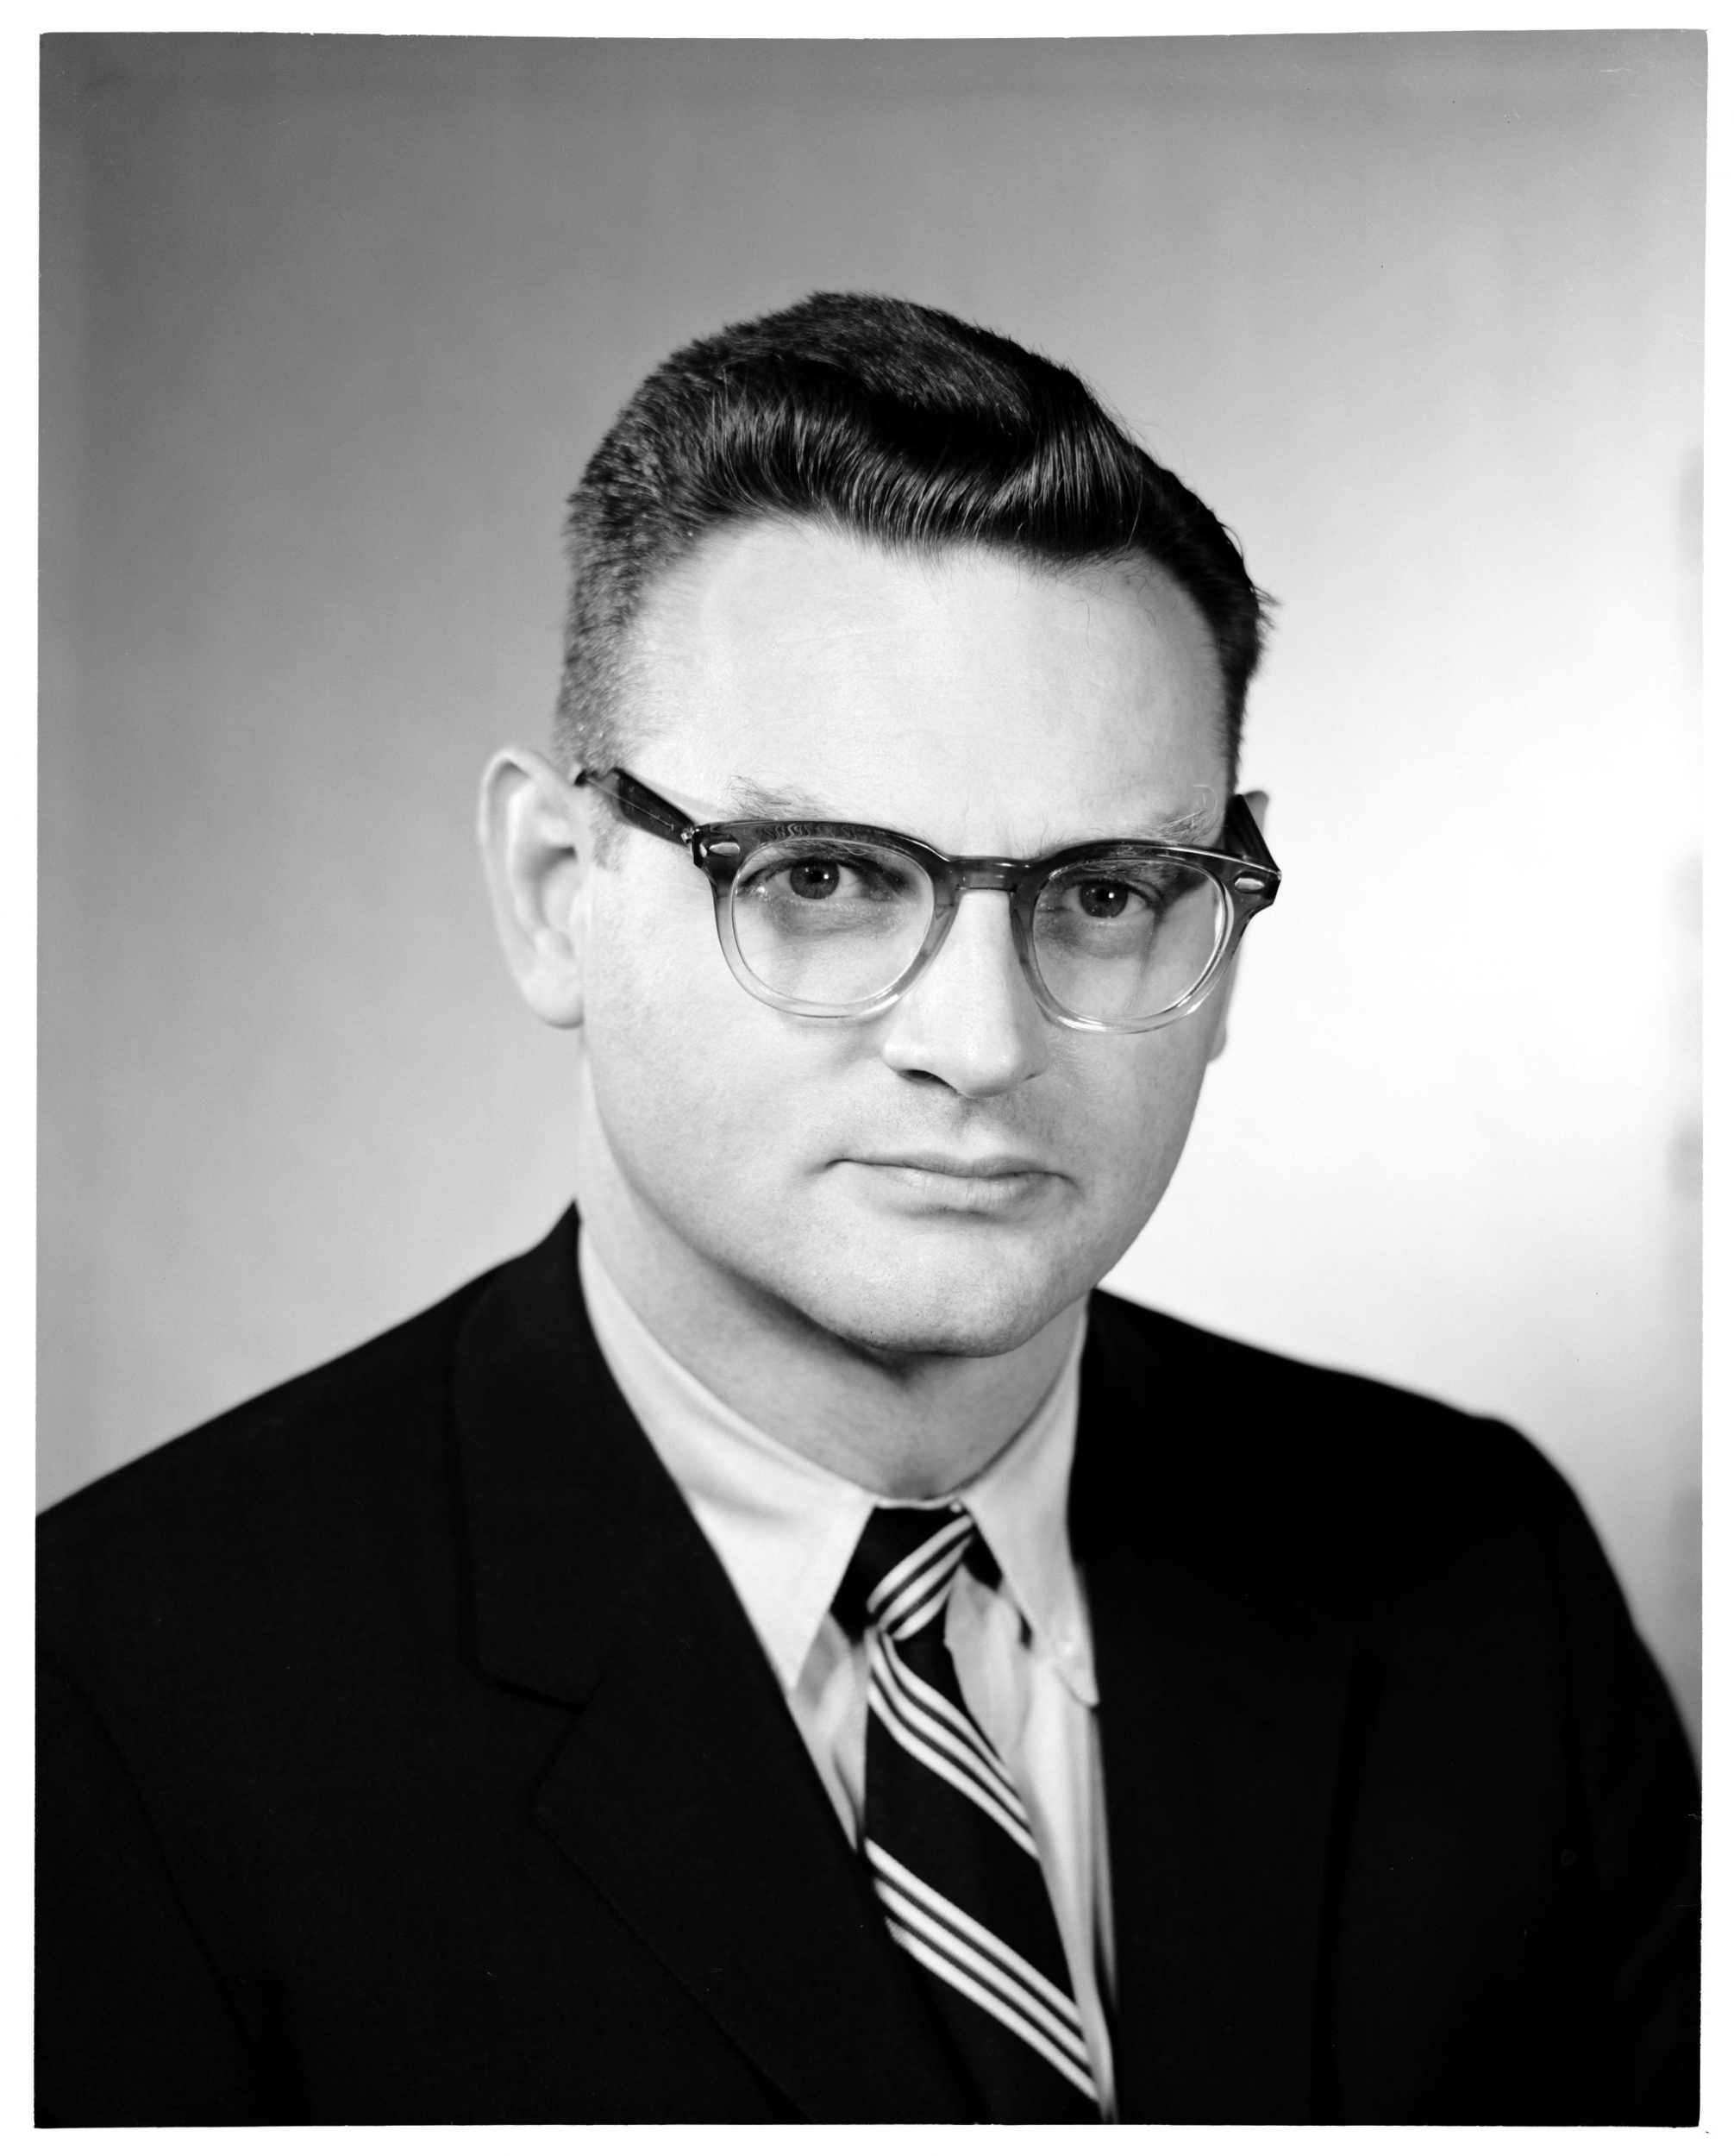 1967 photo of John Goodenough